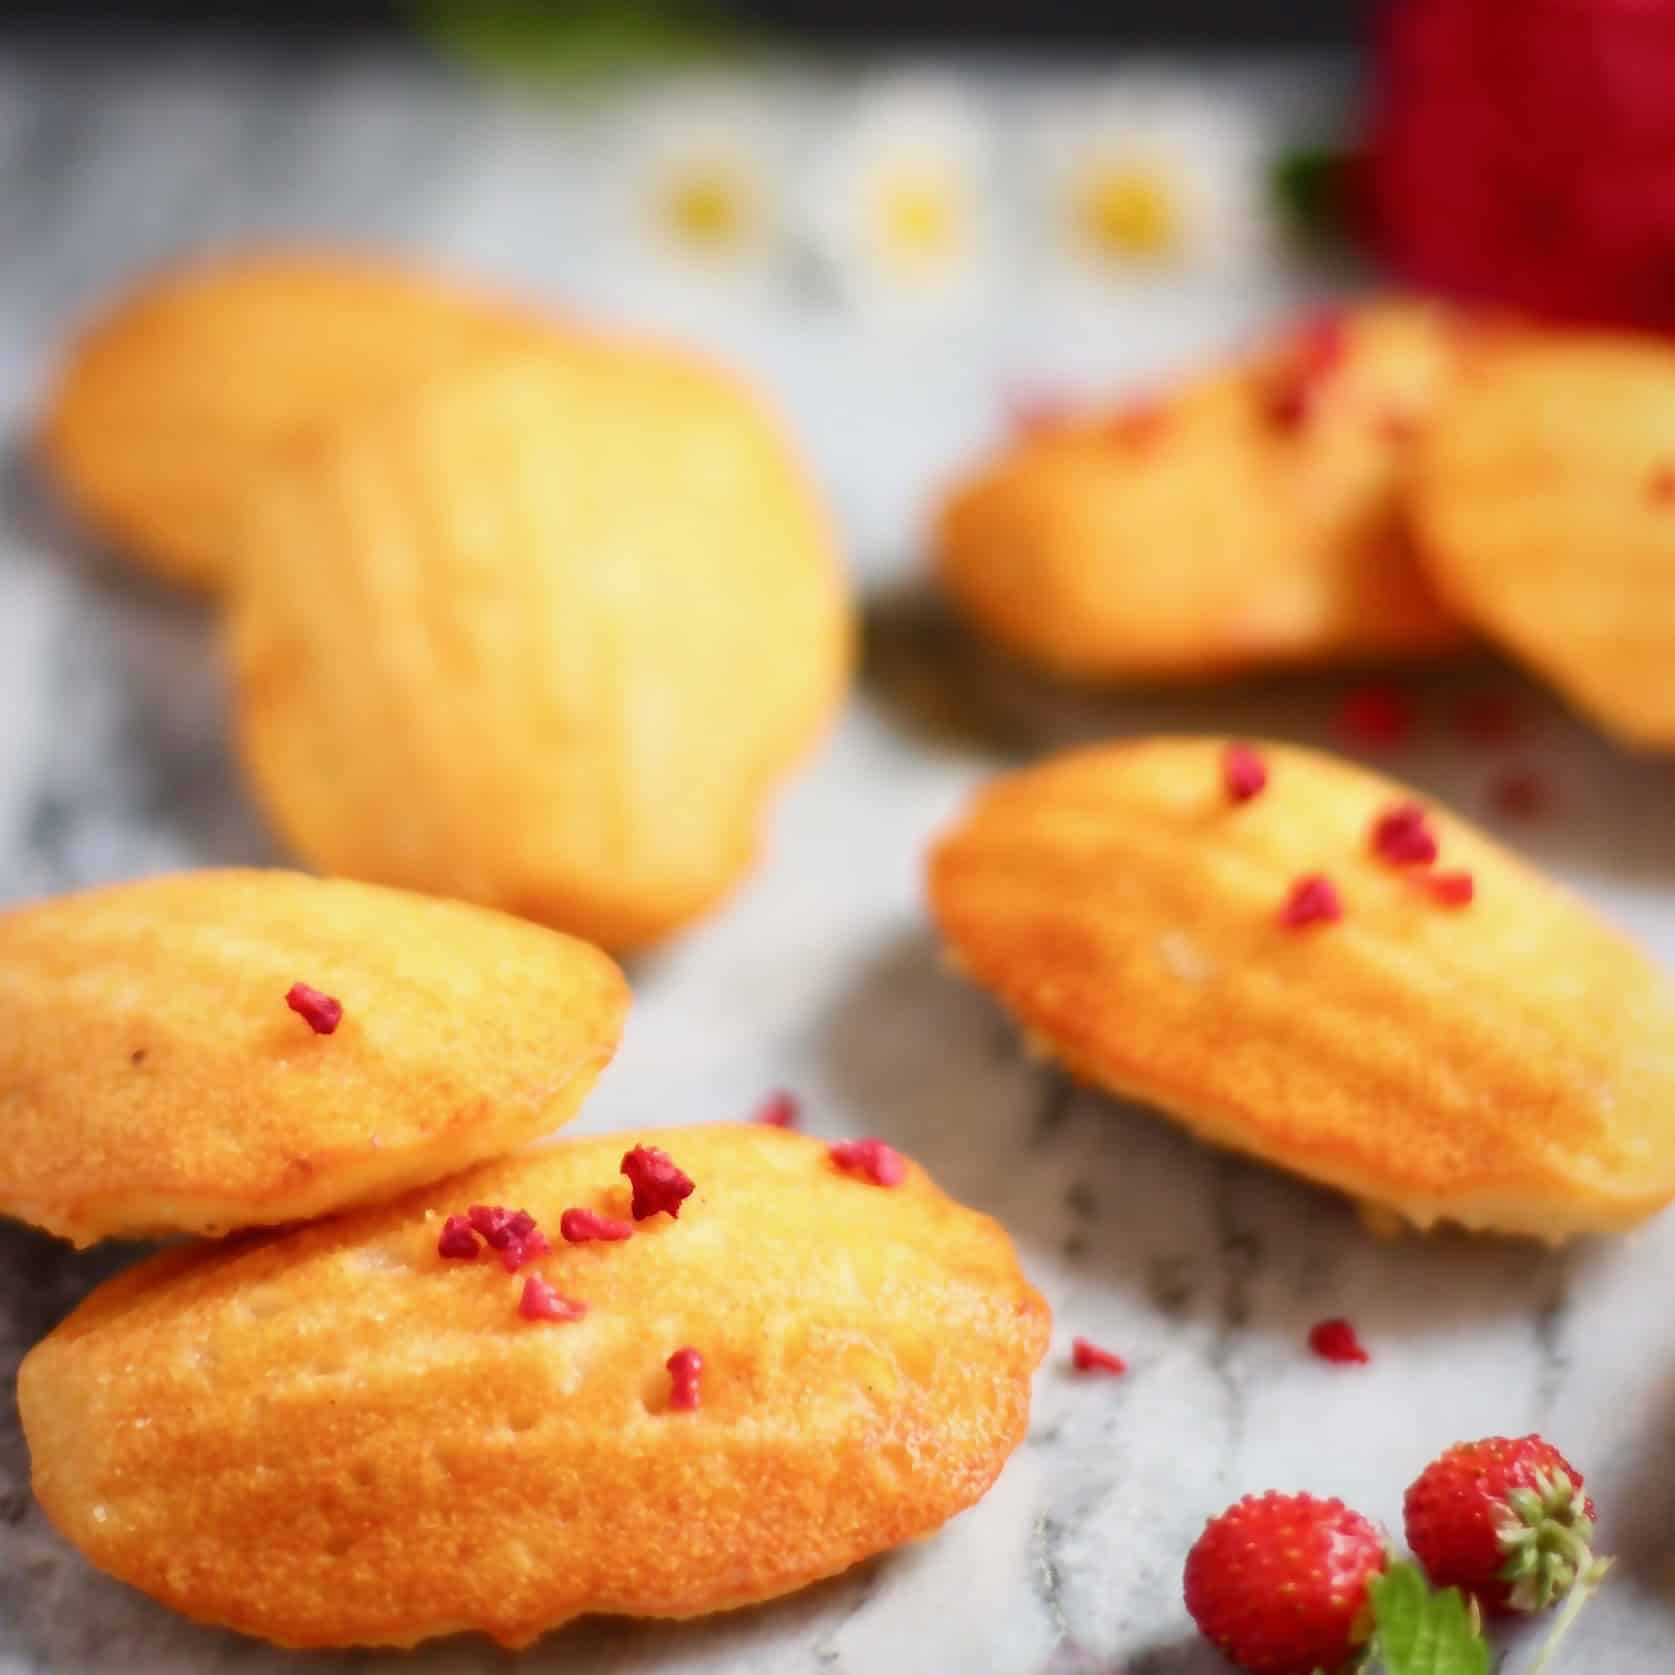 Seven gluten-free vegan madeleines on a marble background